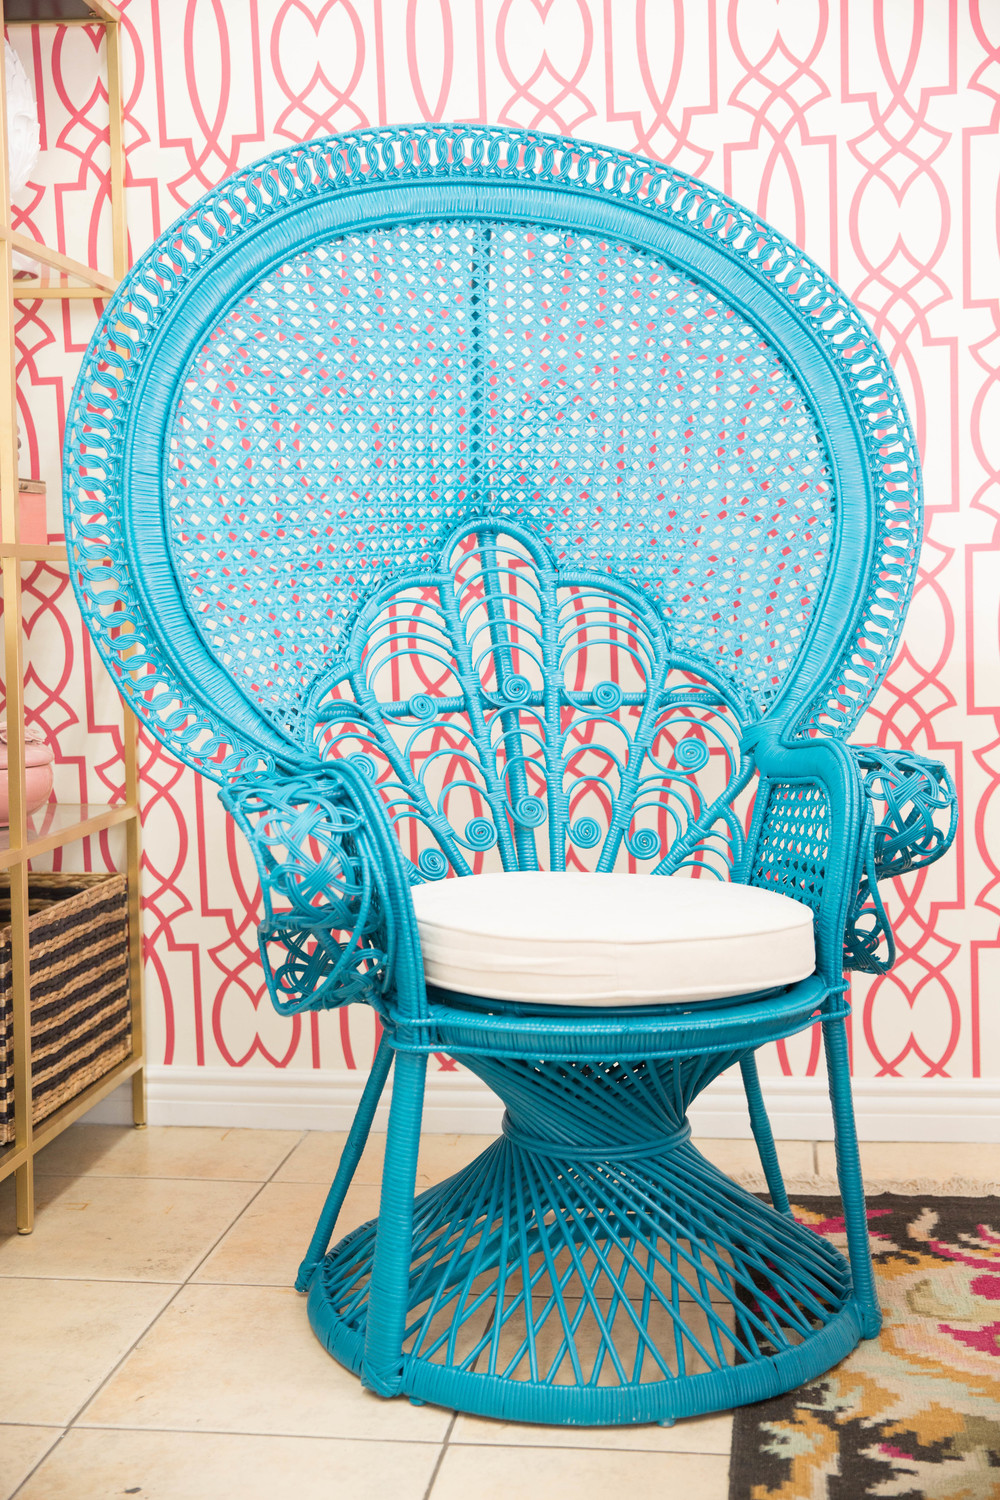 An Ordinary Desk Chair Was Not Option This Boho Beauty Had To Do A Turquoise Peacock Fiona Written All Over It